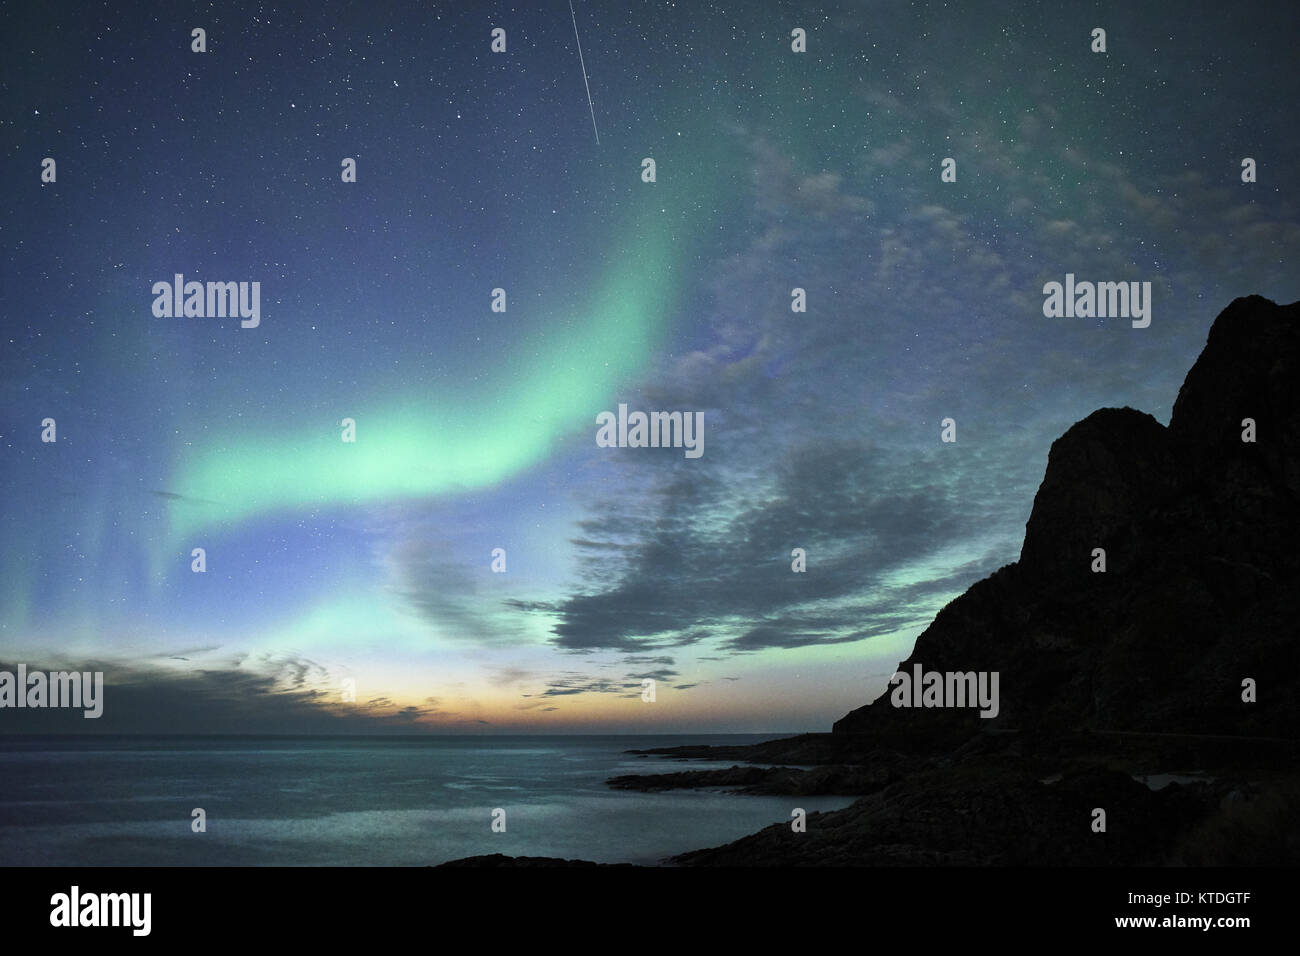 Aurora Borealis, Northern Lights from Noss, Andoya, Andoy, Nordland, Norway - Stock Image